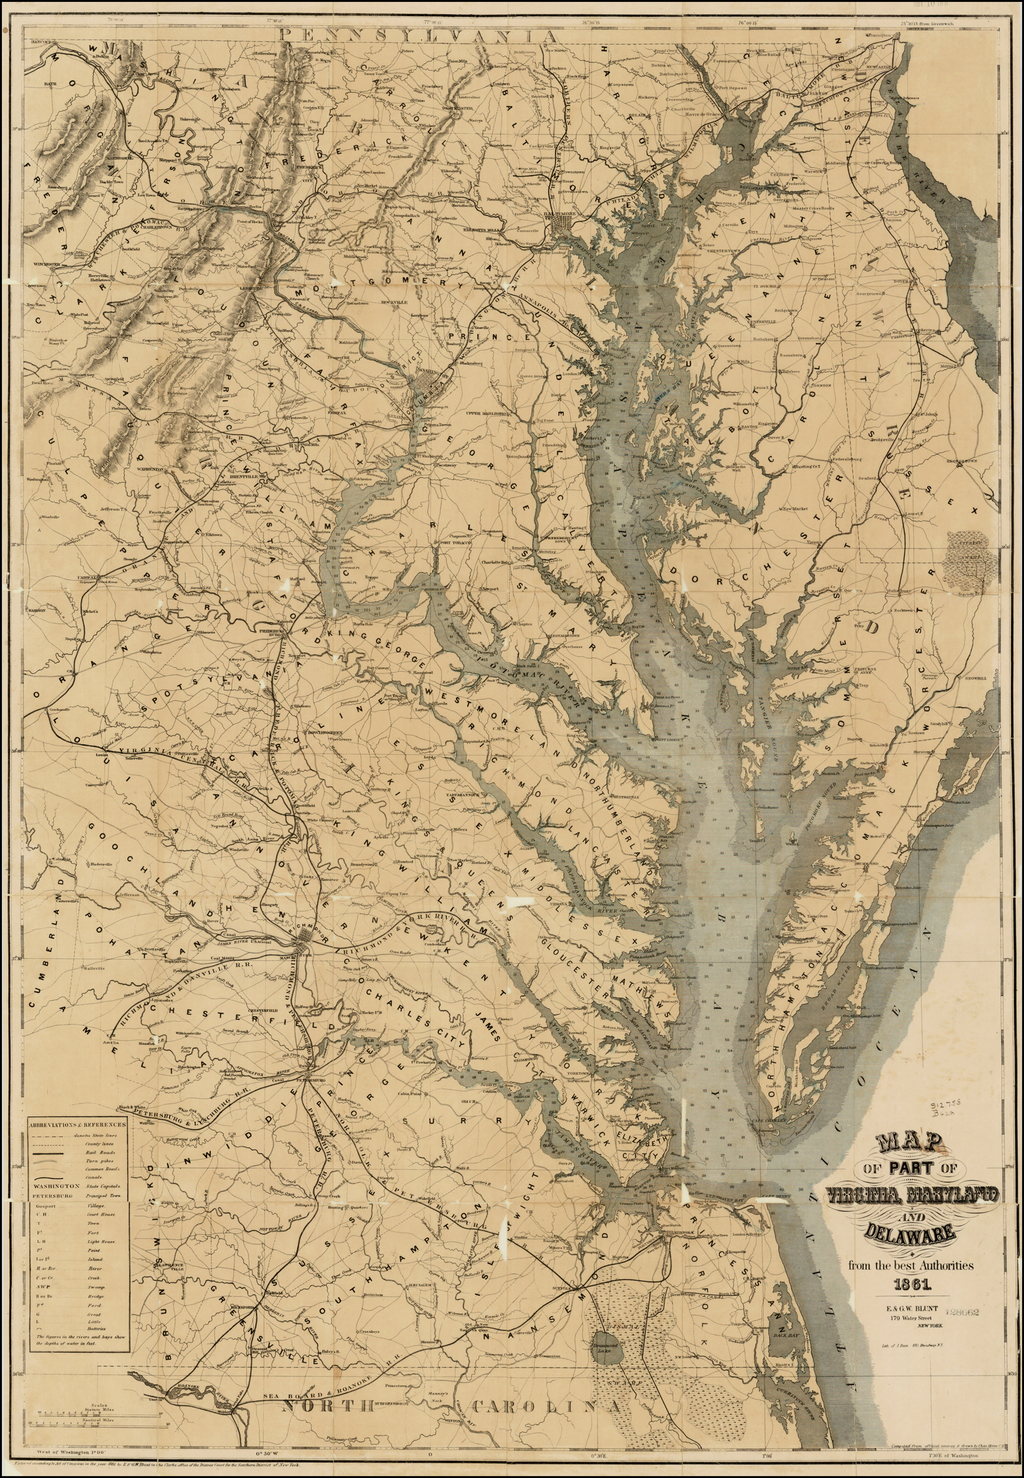 Map of Part of Virginia, Maryland and Delaware from the best Authorities 1861. By E & GW Blunt